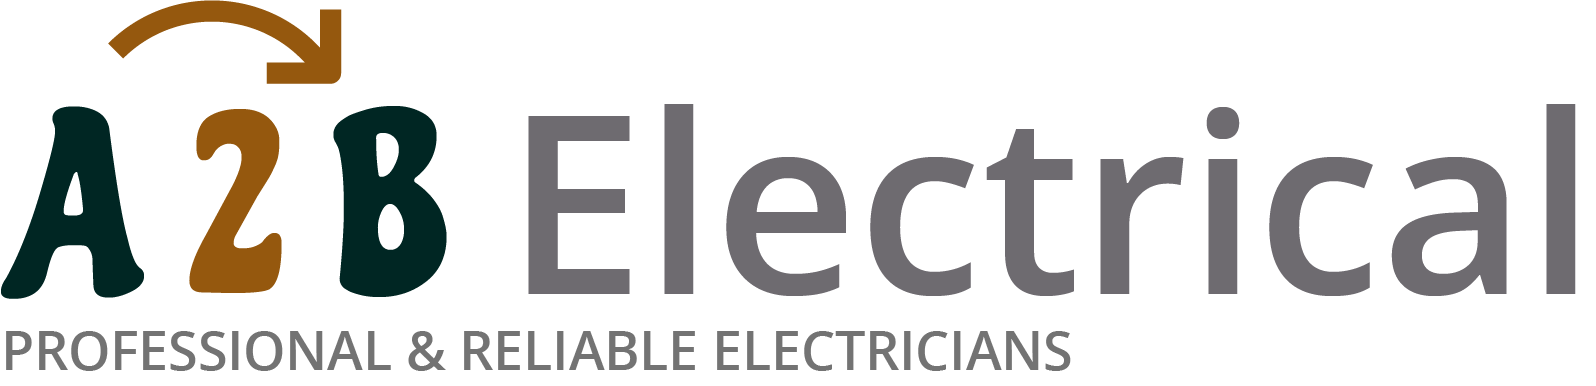 If you have electrical wiring problems in Westminster, we can provide an electrician to have a look for you.